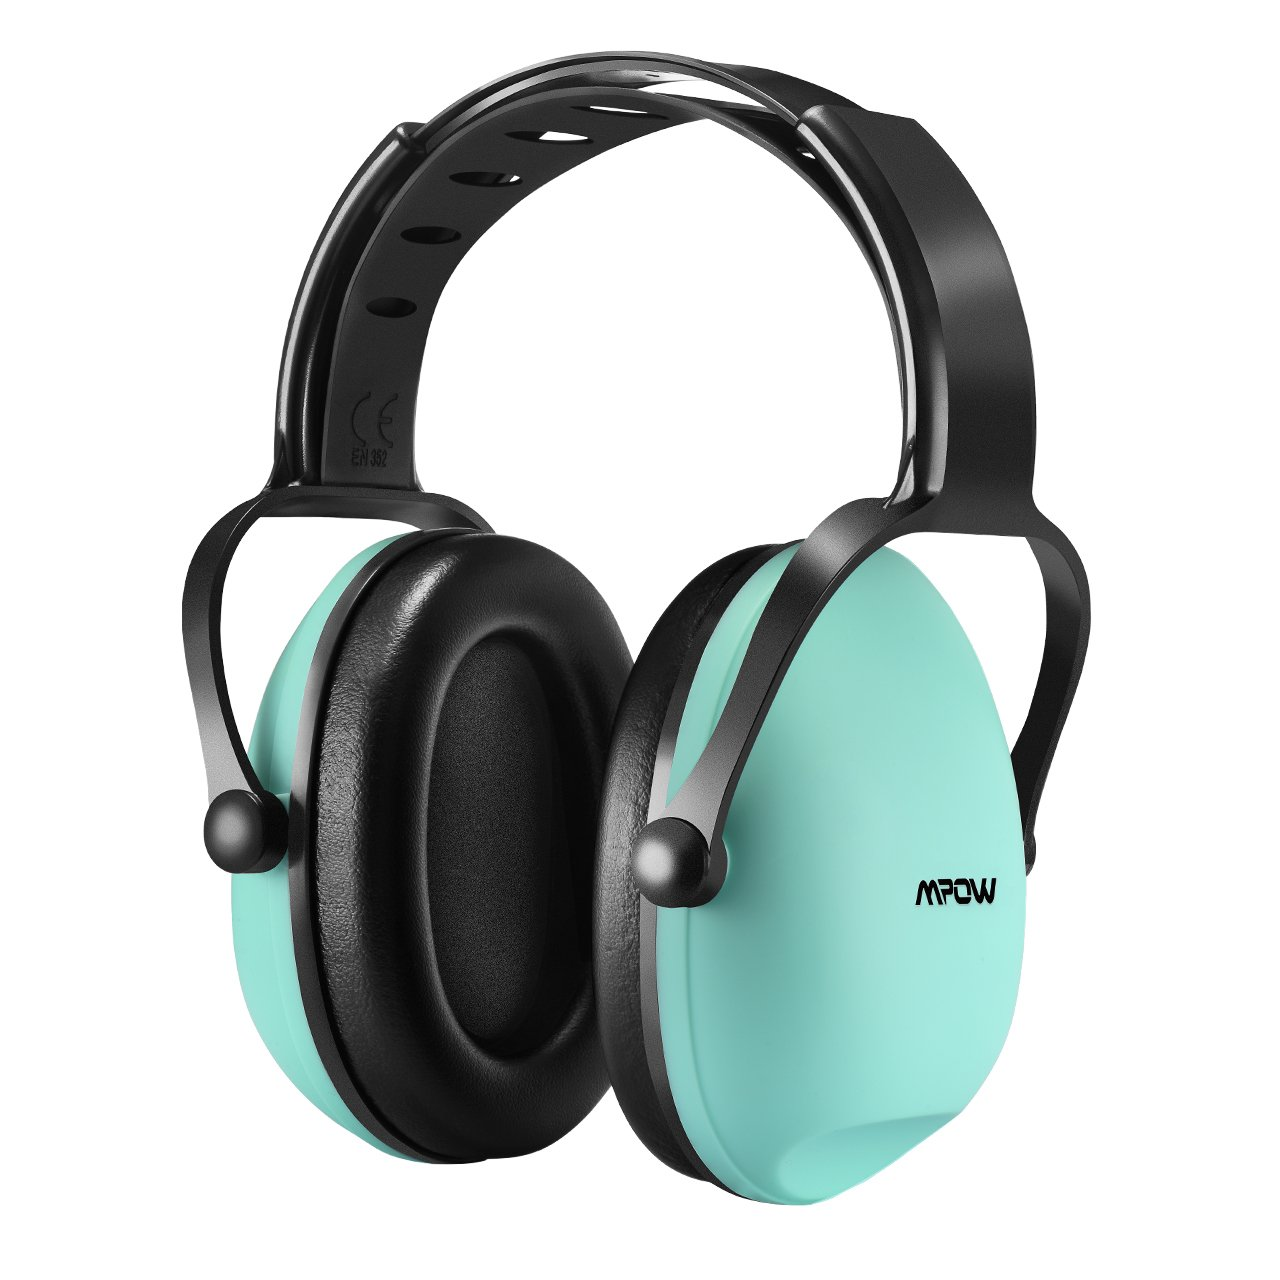 Ear Defenders Kids ,Mpow [Upgraded] Comfortable Kids Ear Muffs SNR 26db / NRR 22dB Noise Reduction Baby Ear Defenders , Adjustable Soft Headband Ear Protection for Shooting Hunting, Fireworks, Sporting Races, Concert, planes,Shopping Centers ,Ear Defender